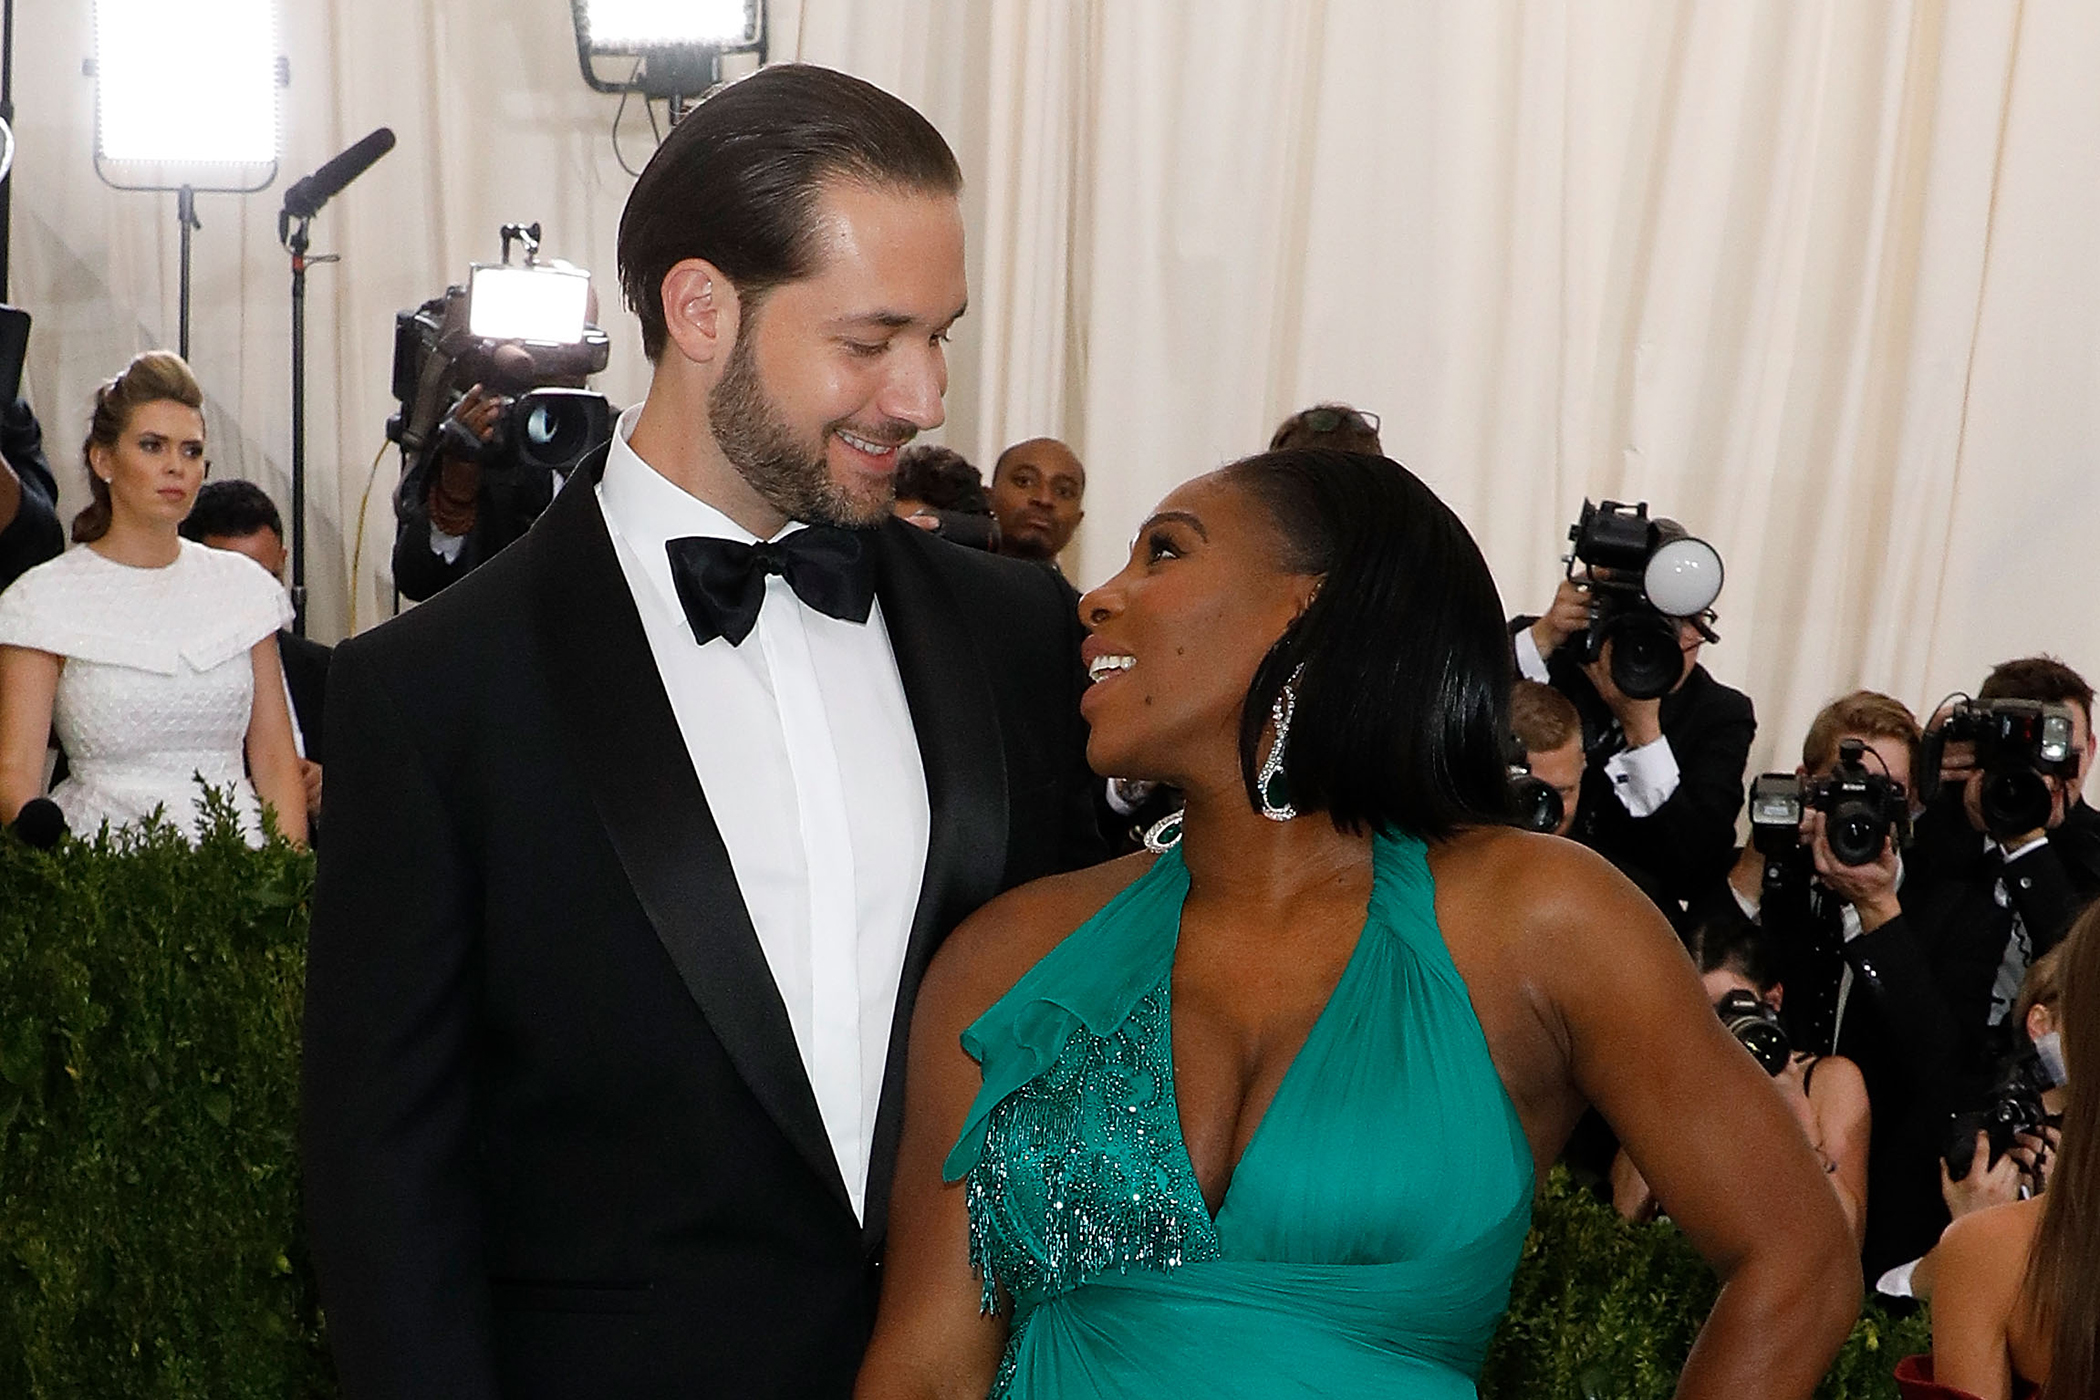 Alexis Ohanian and Serena Williams attend  Rei Kawakubo/Commes Des Garcons: Art of the In-Between  at Metropolitan Museum of Art on May 1, 2017 in New York City.